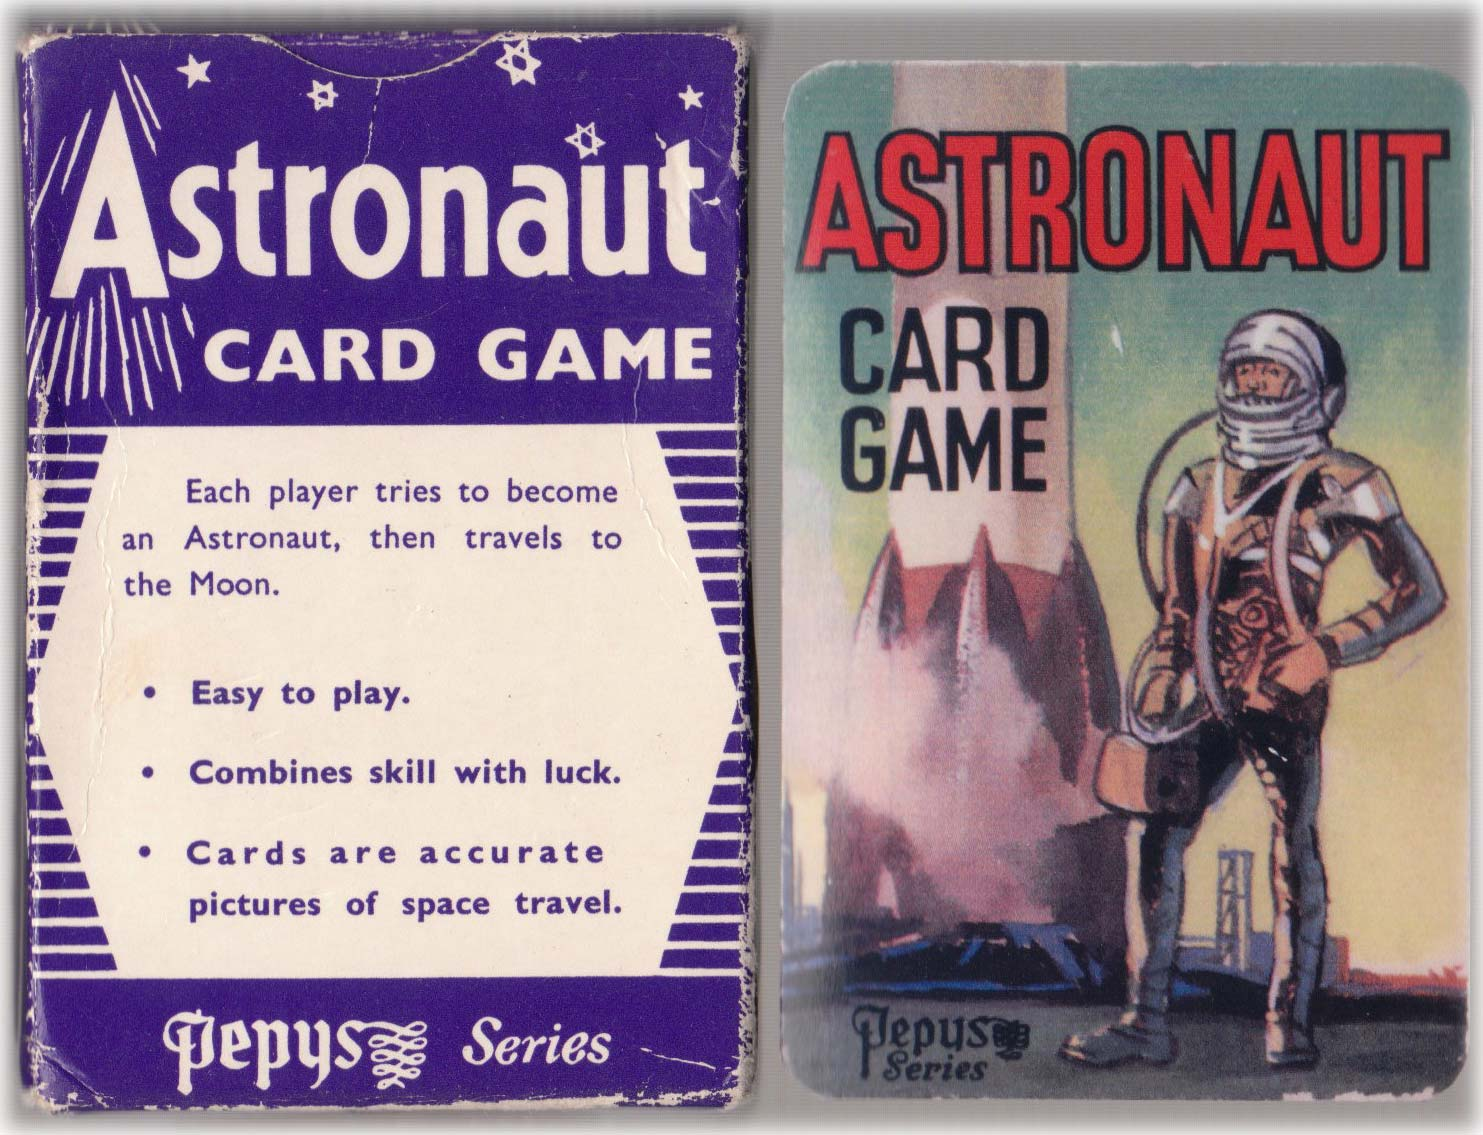 Astronaut card game published by Pepys Series (Castell Bros) with pictures of Russian and American spacecraft